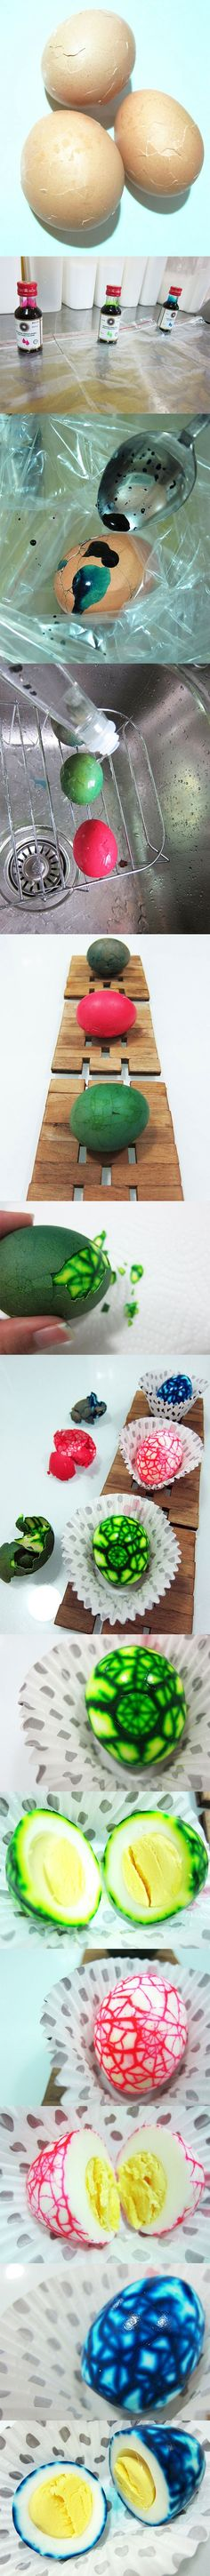 Shattered eggs - so pretty, and how amazing would these be packing into a lunch?!